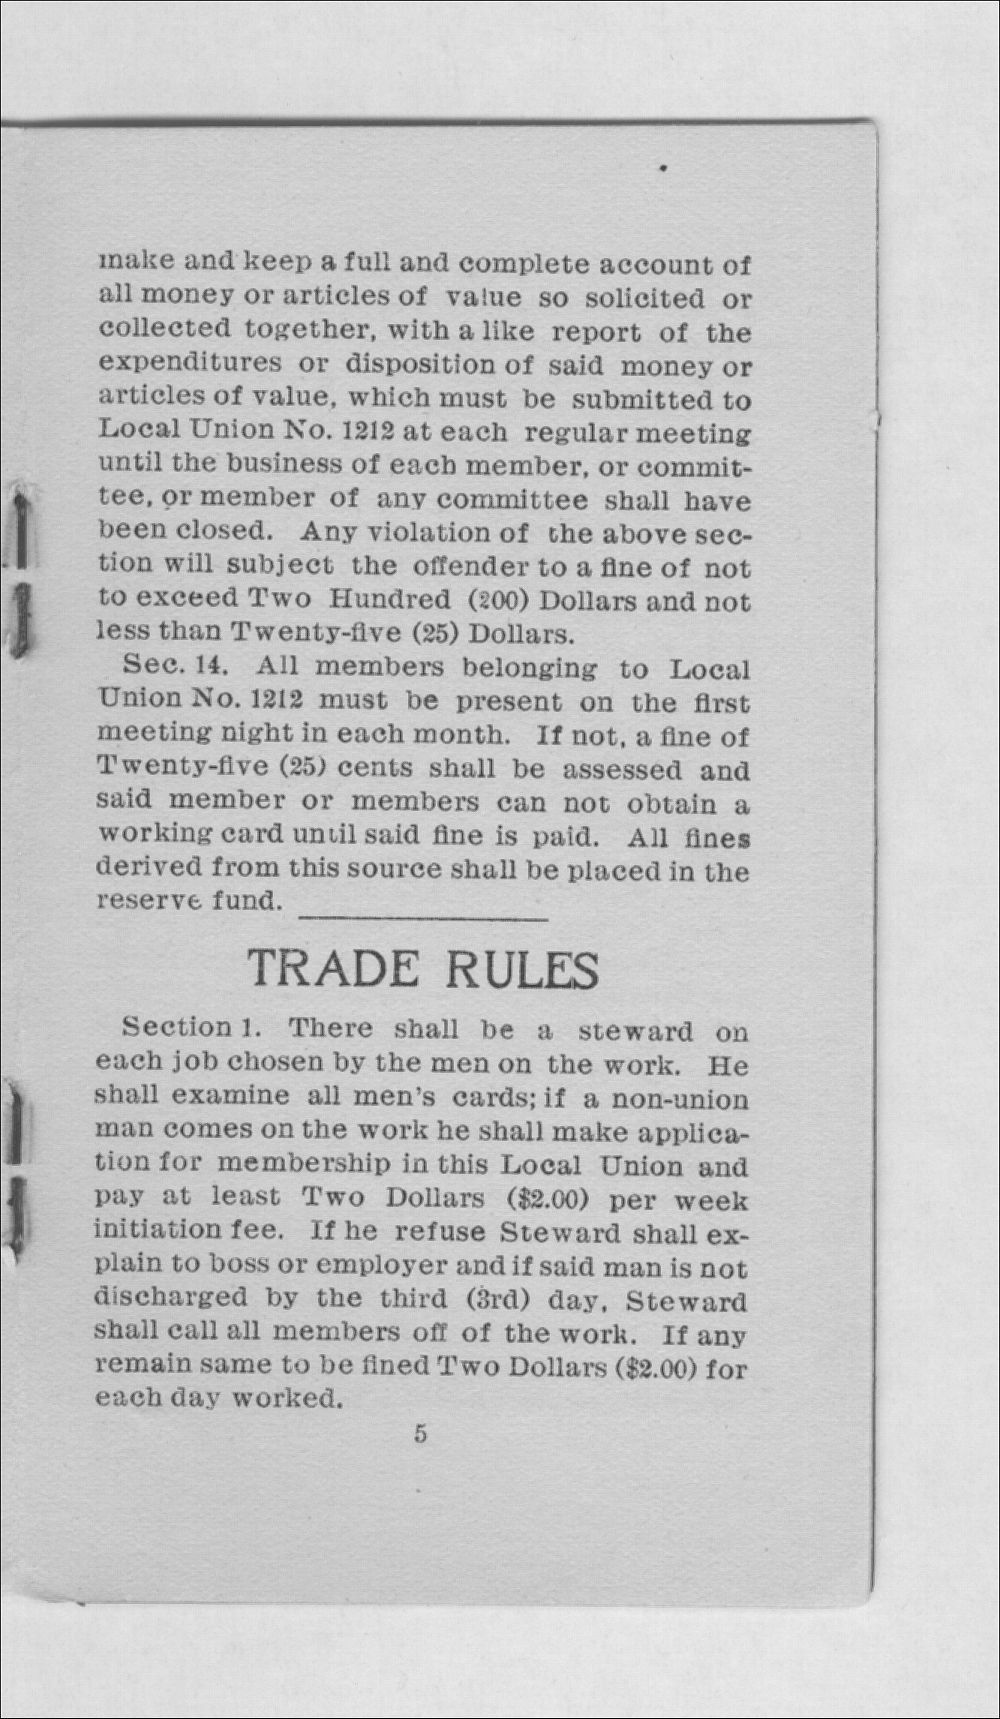 By-laws and trade rules of Carpenter's Union No. 1212 - 5